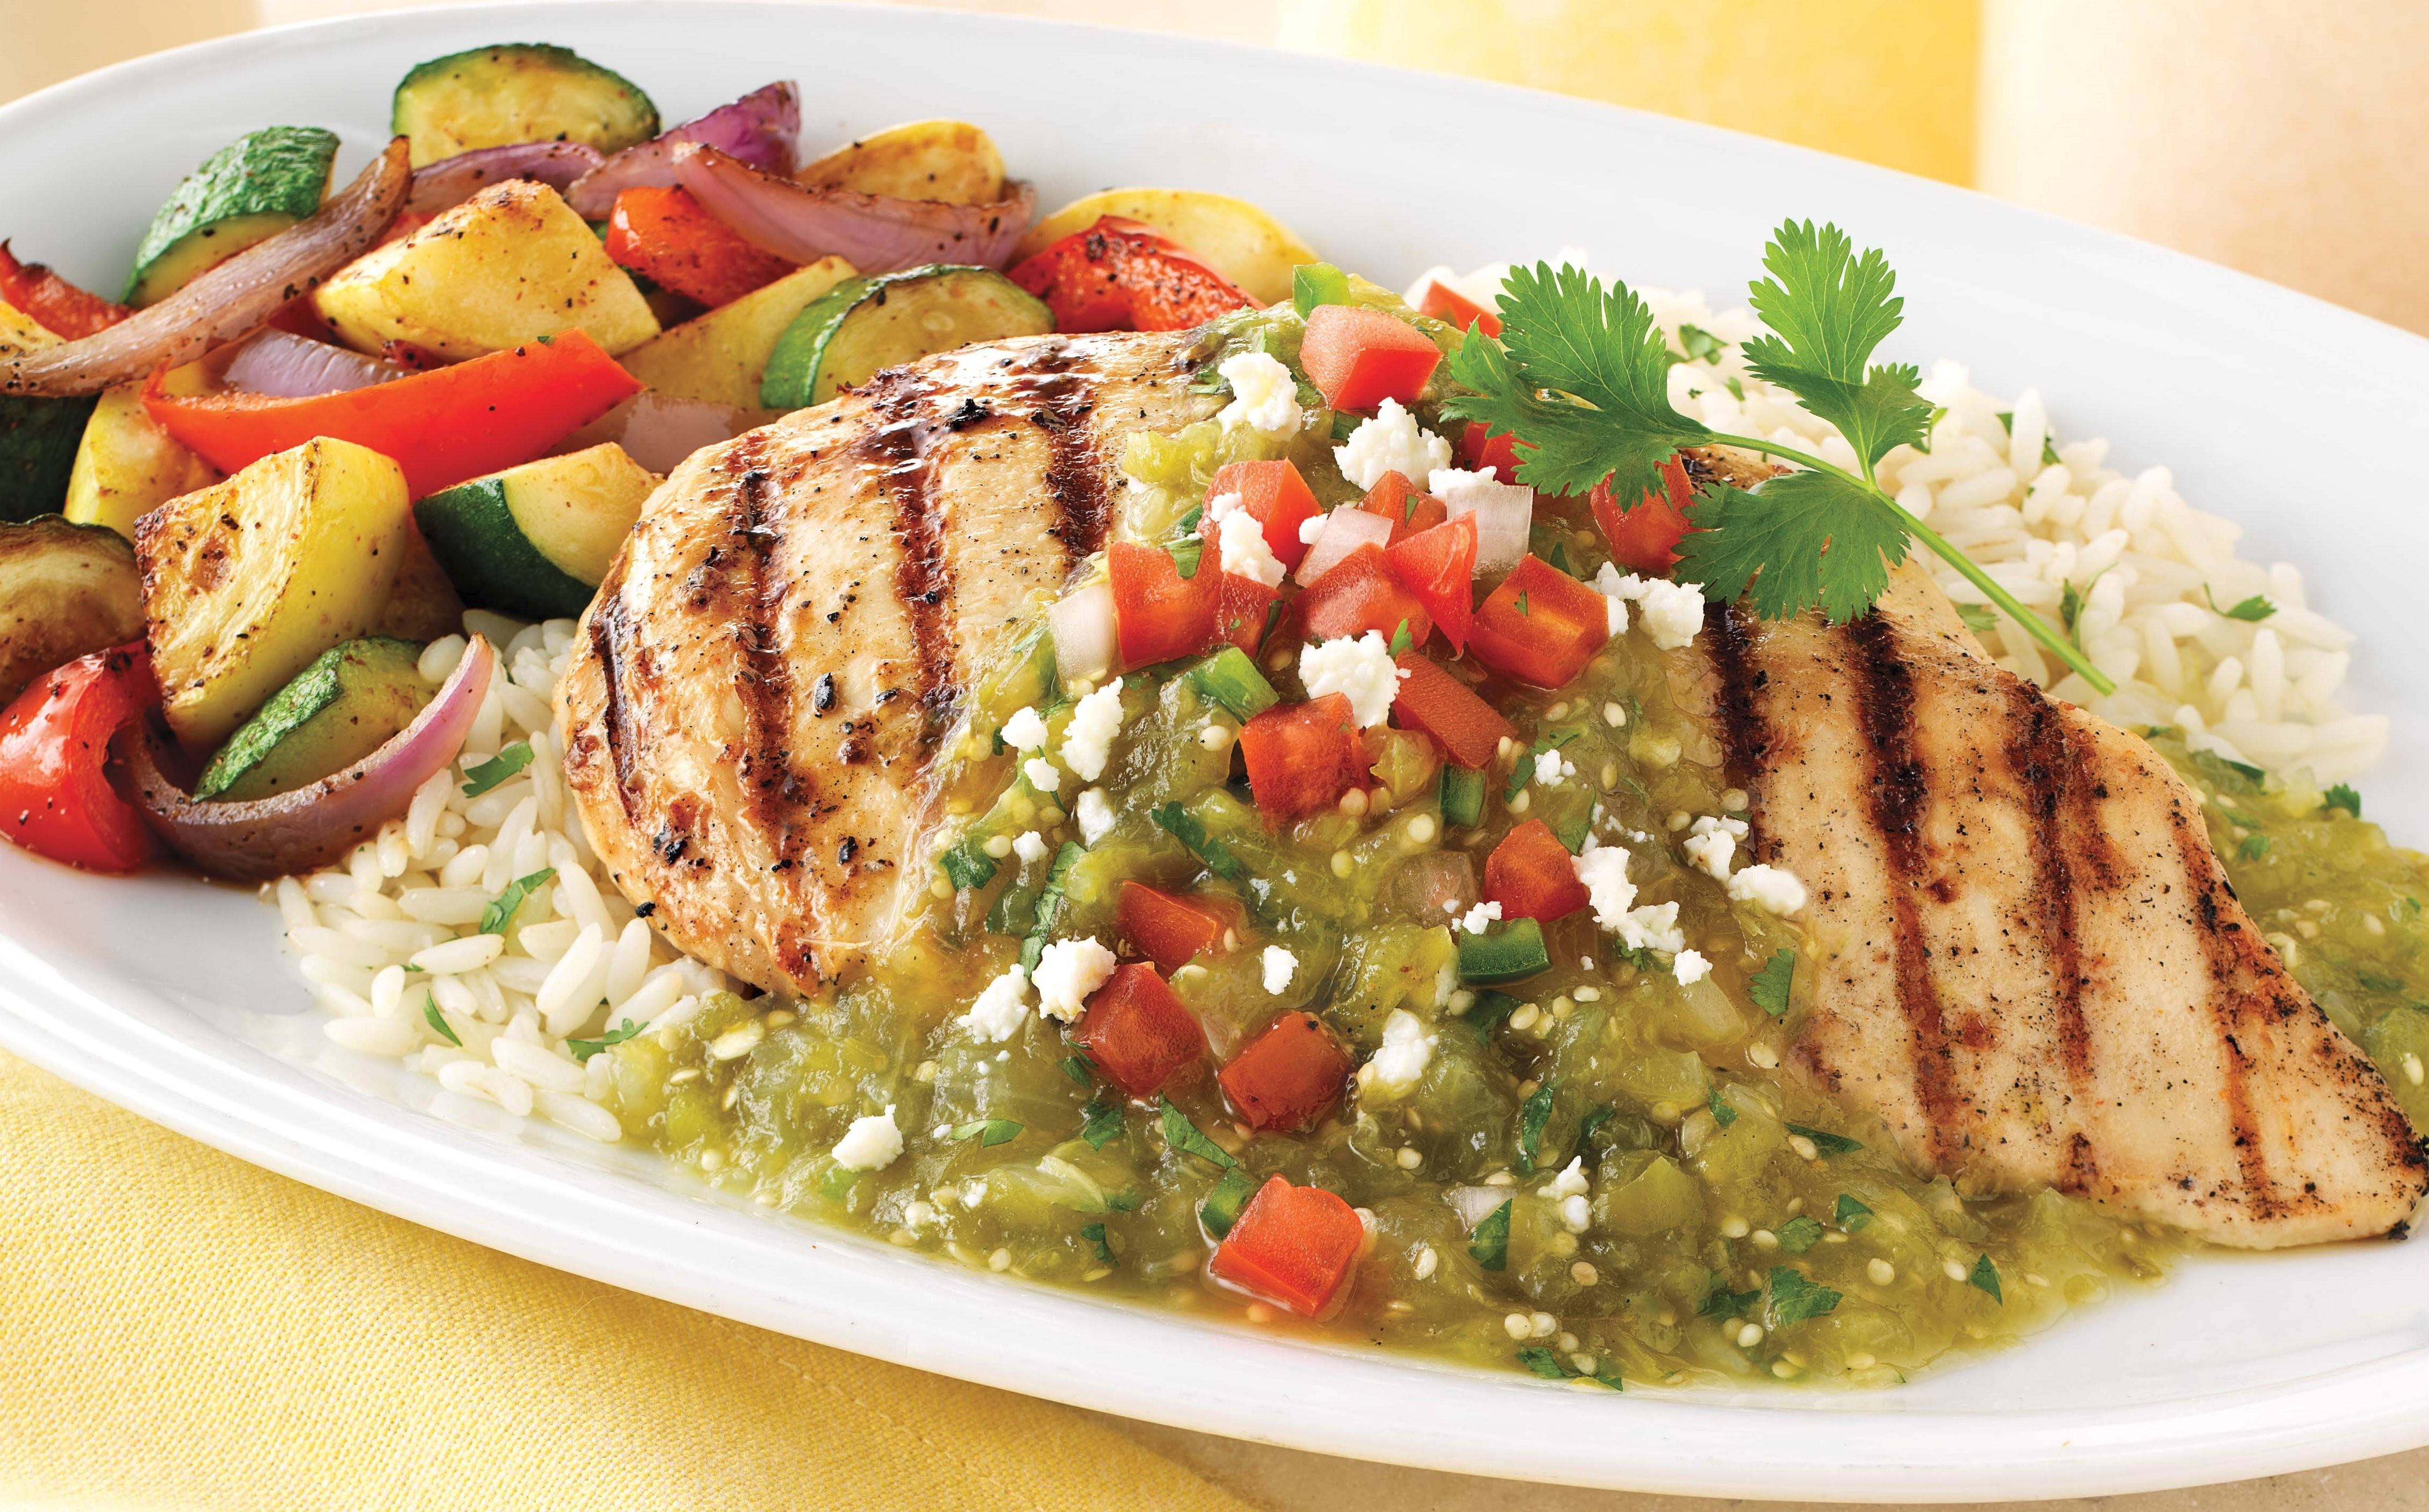 On the Border recently added several menu items under 600 calories, including this Mexican grilled chicken.